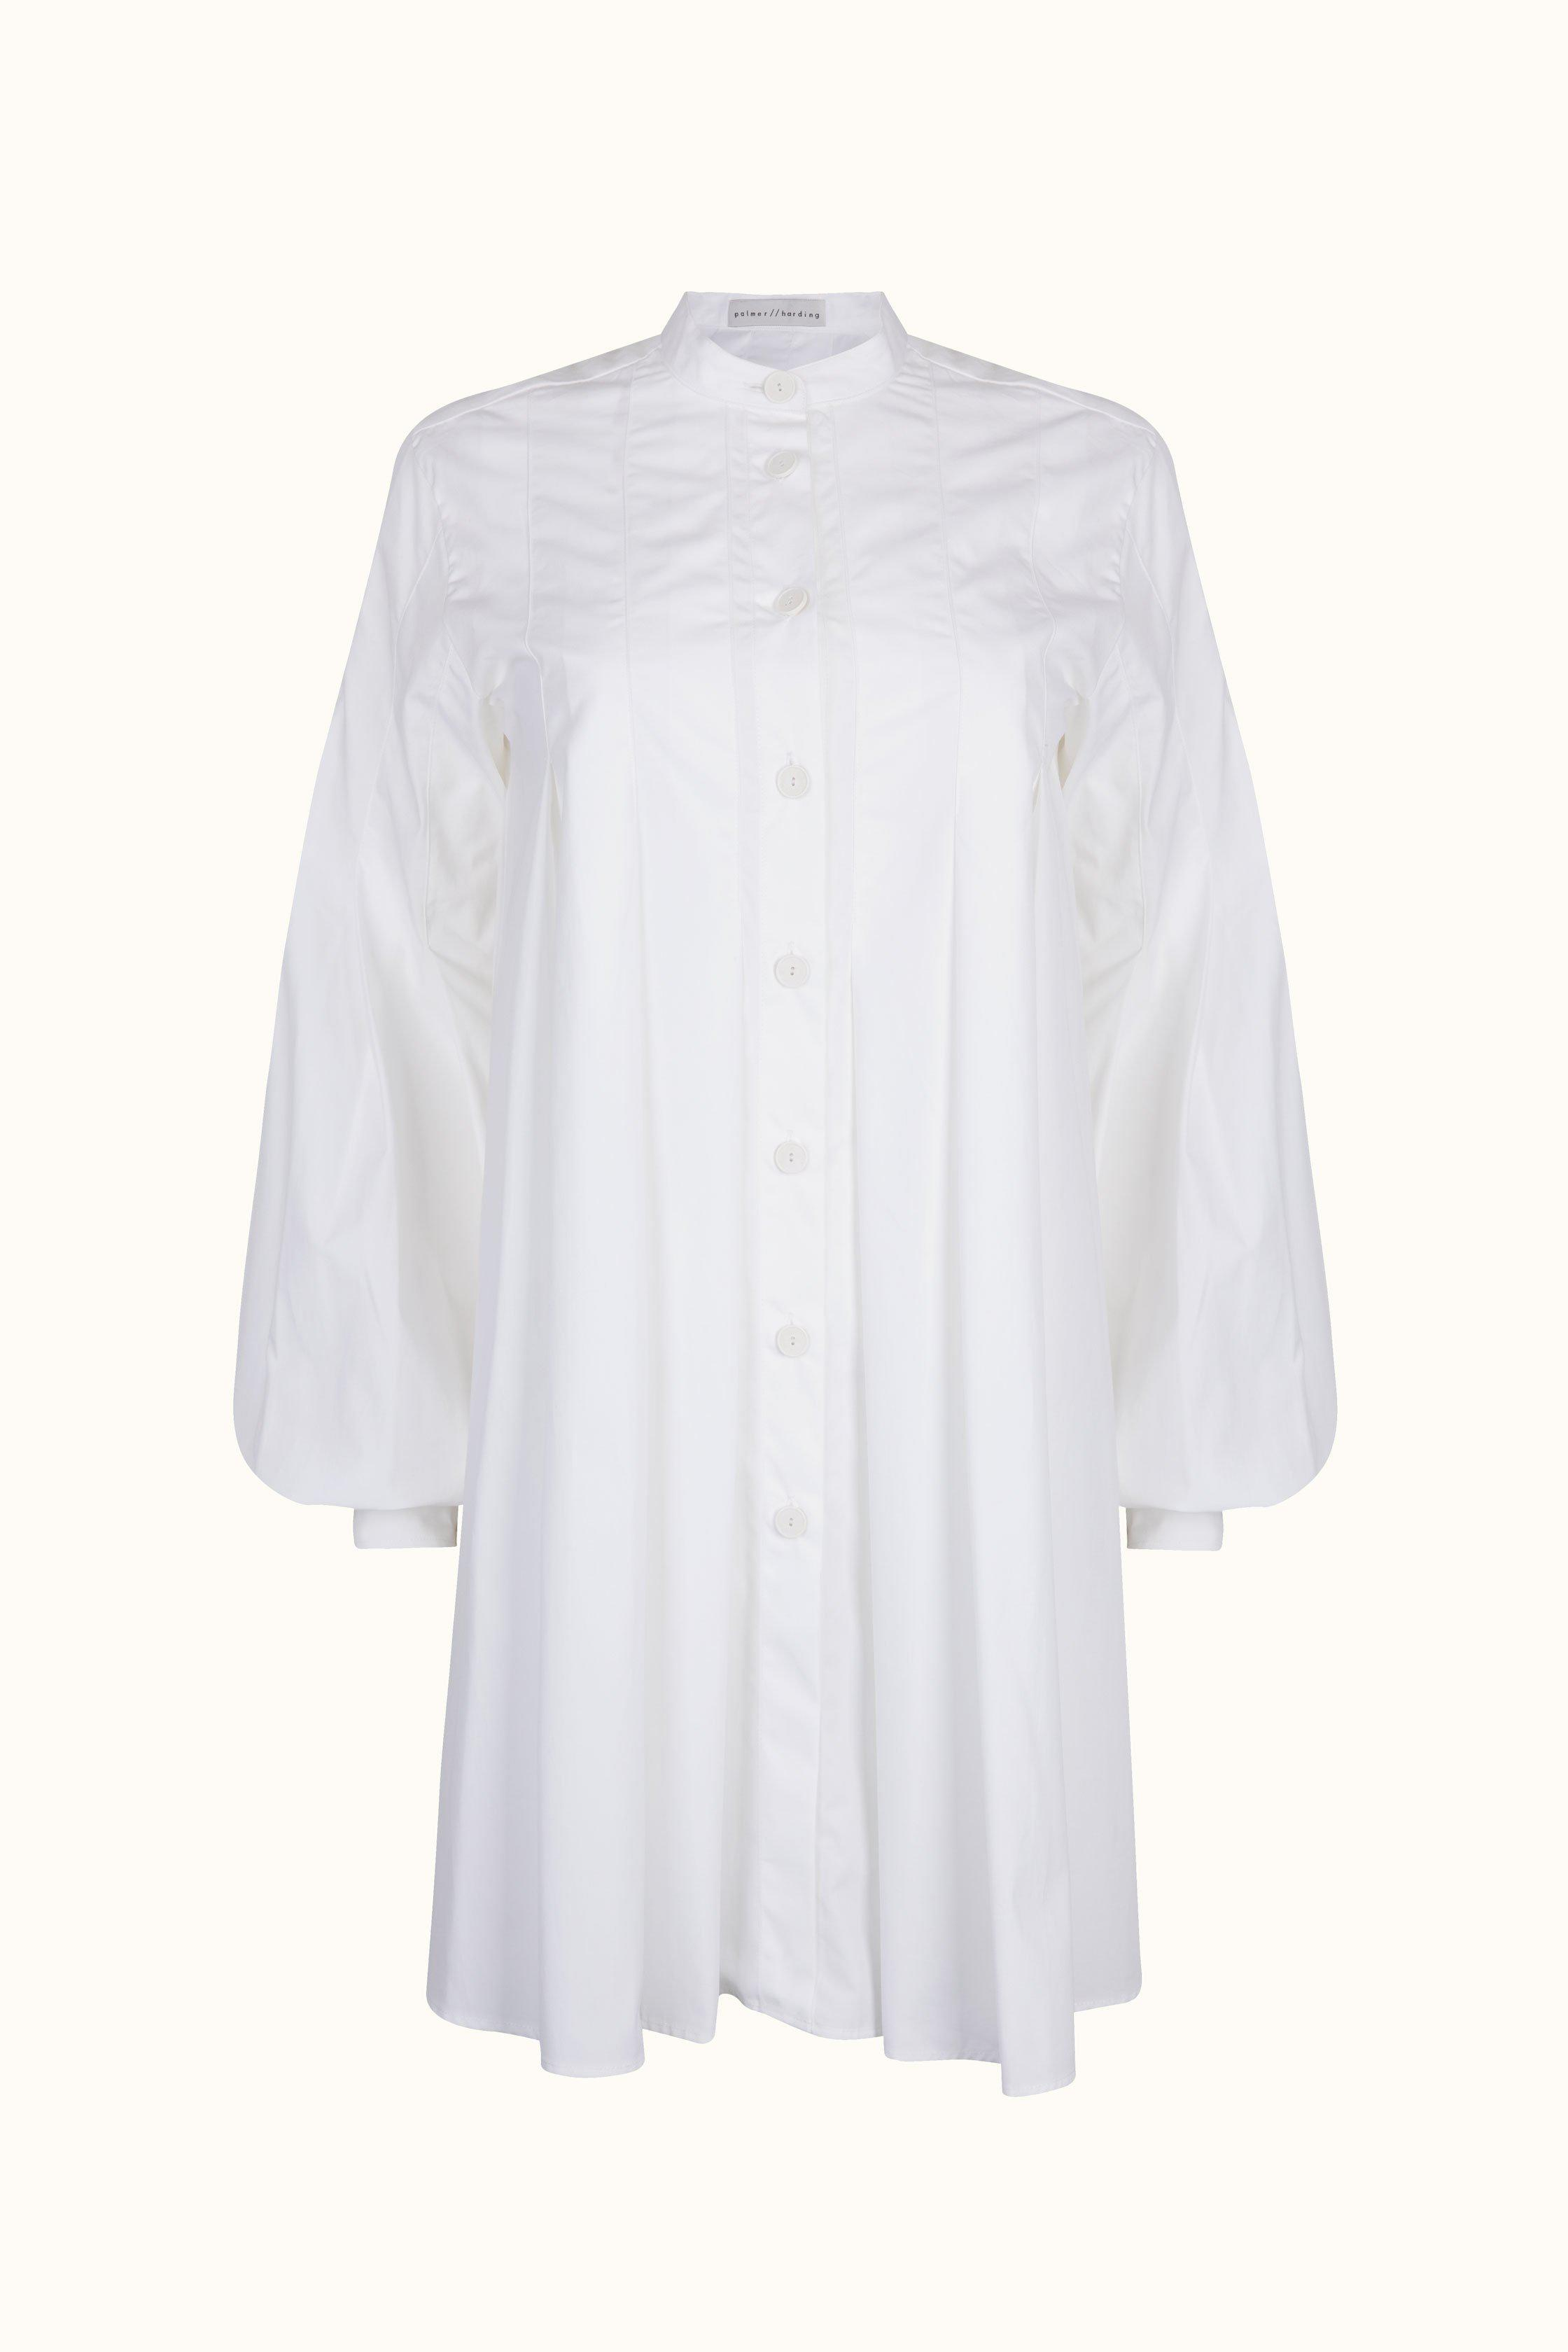 COURAGEOUS HEARTS TUNIC 5